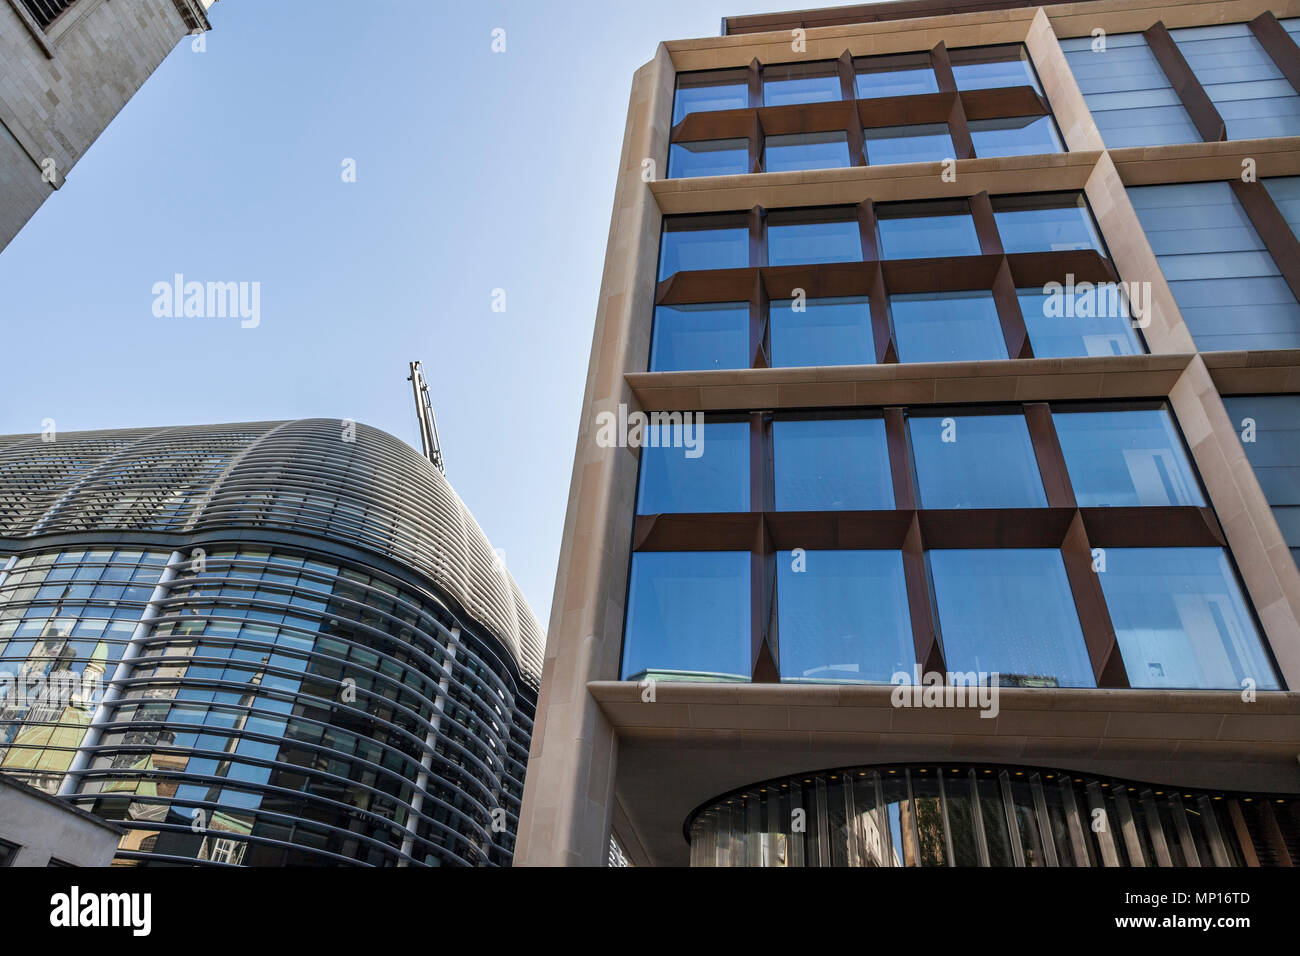 Bloomberg new London headquarters and The Walbrook building (left). - Stock Image